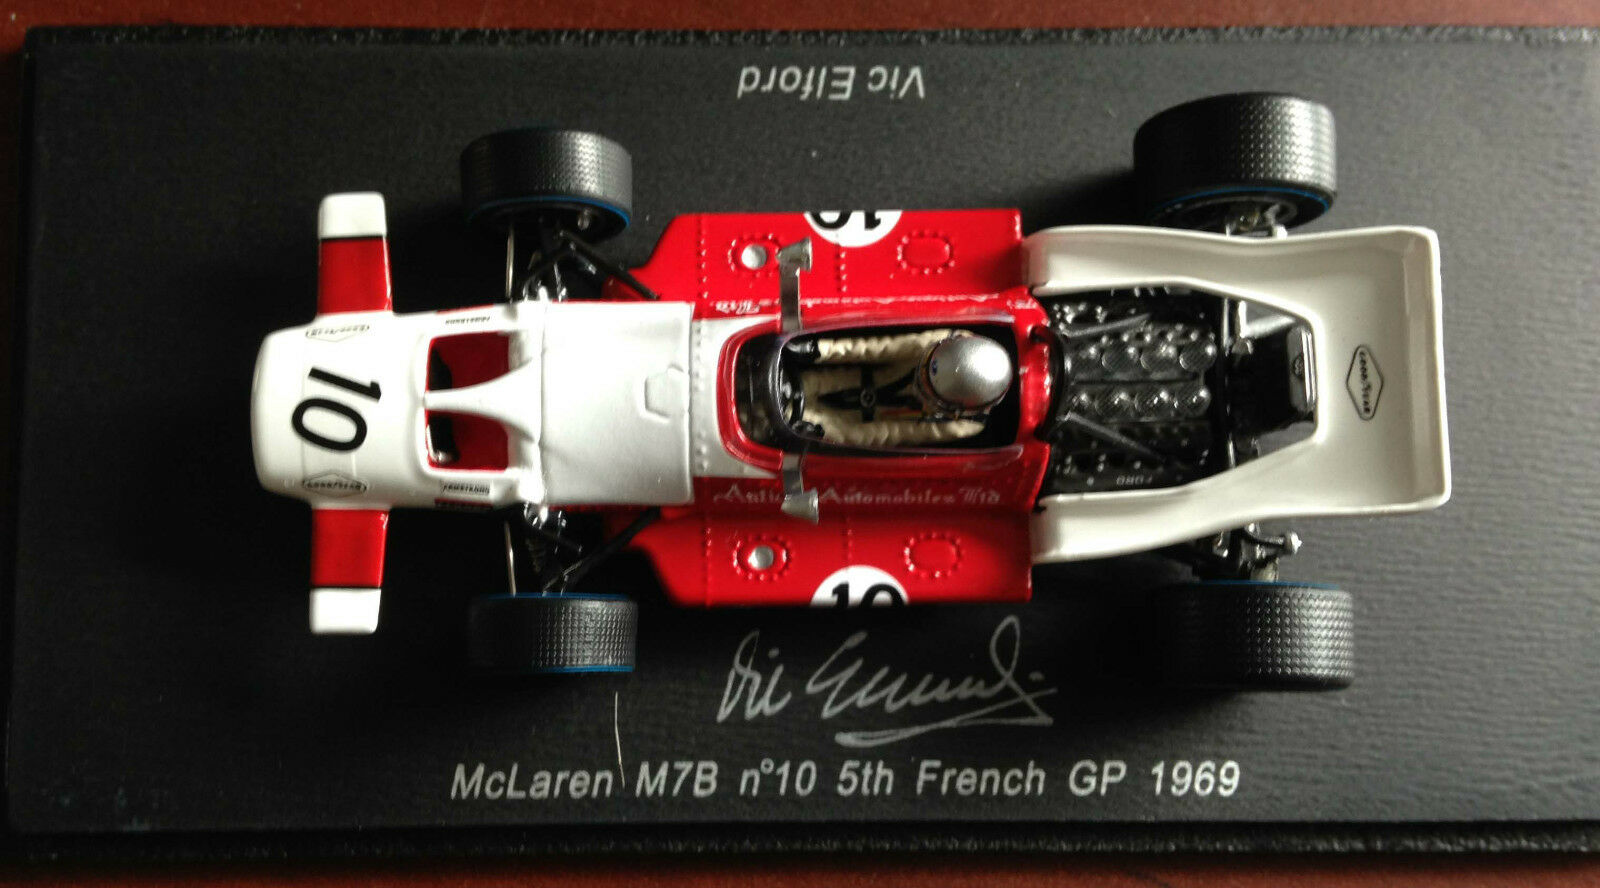 McLaren M7B - French GP 1969 Formula 1 SIGNED by VIC ELFORD Spark 1 43 Diecast